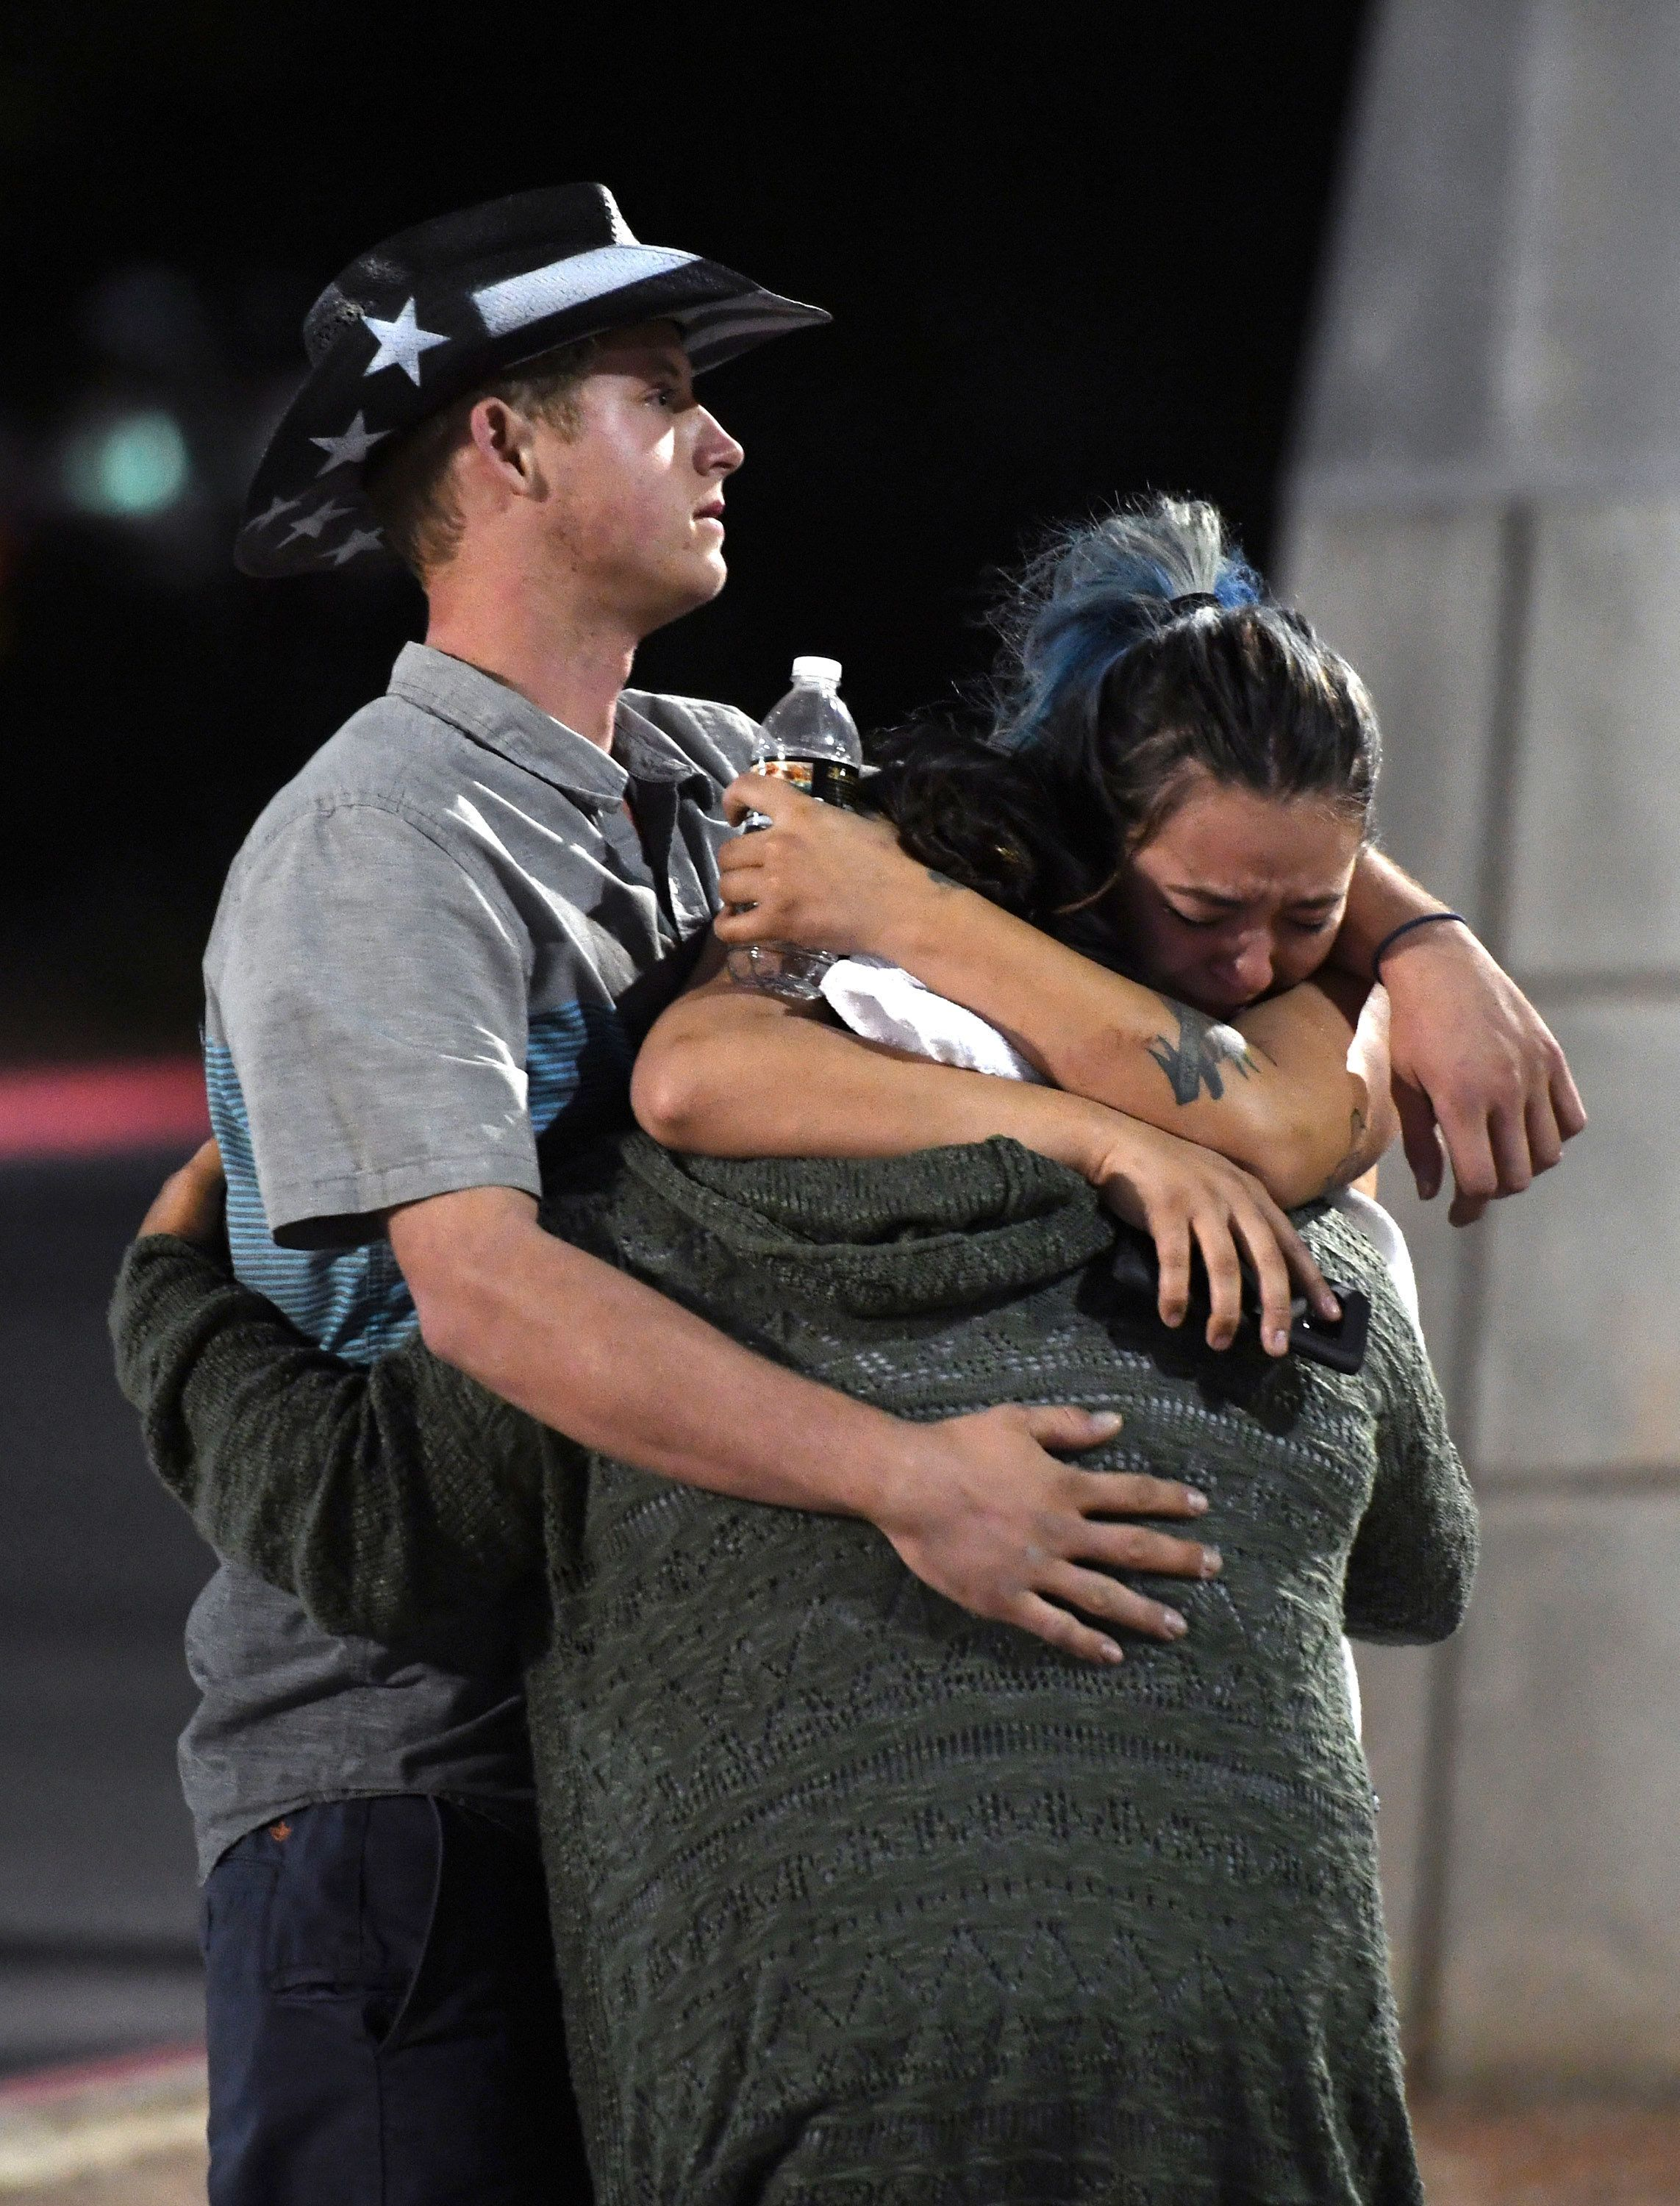 LAS VEGAS, NV - OCTOBER 02:  People hug and cry outside the Thomas & Mack Center after a mass shooting at the Route 91 Harvest country music festival on October 2, 2017 in Las Vegas, Nevada. A gunman, identified as Stephen Paddock, 64, of Mesquite, Nevada, opened fire from the Mandalay Bay Resort and Casino on the music festival, leaving at least 50 people dead and hundreds injured. Police have confirmed that one suspect has been shot. The investigation is ongoing.  (Photo by Ethan Miller/Getty Images)